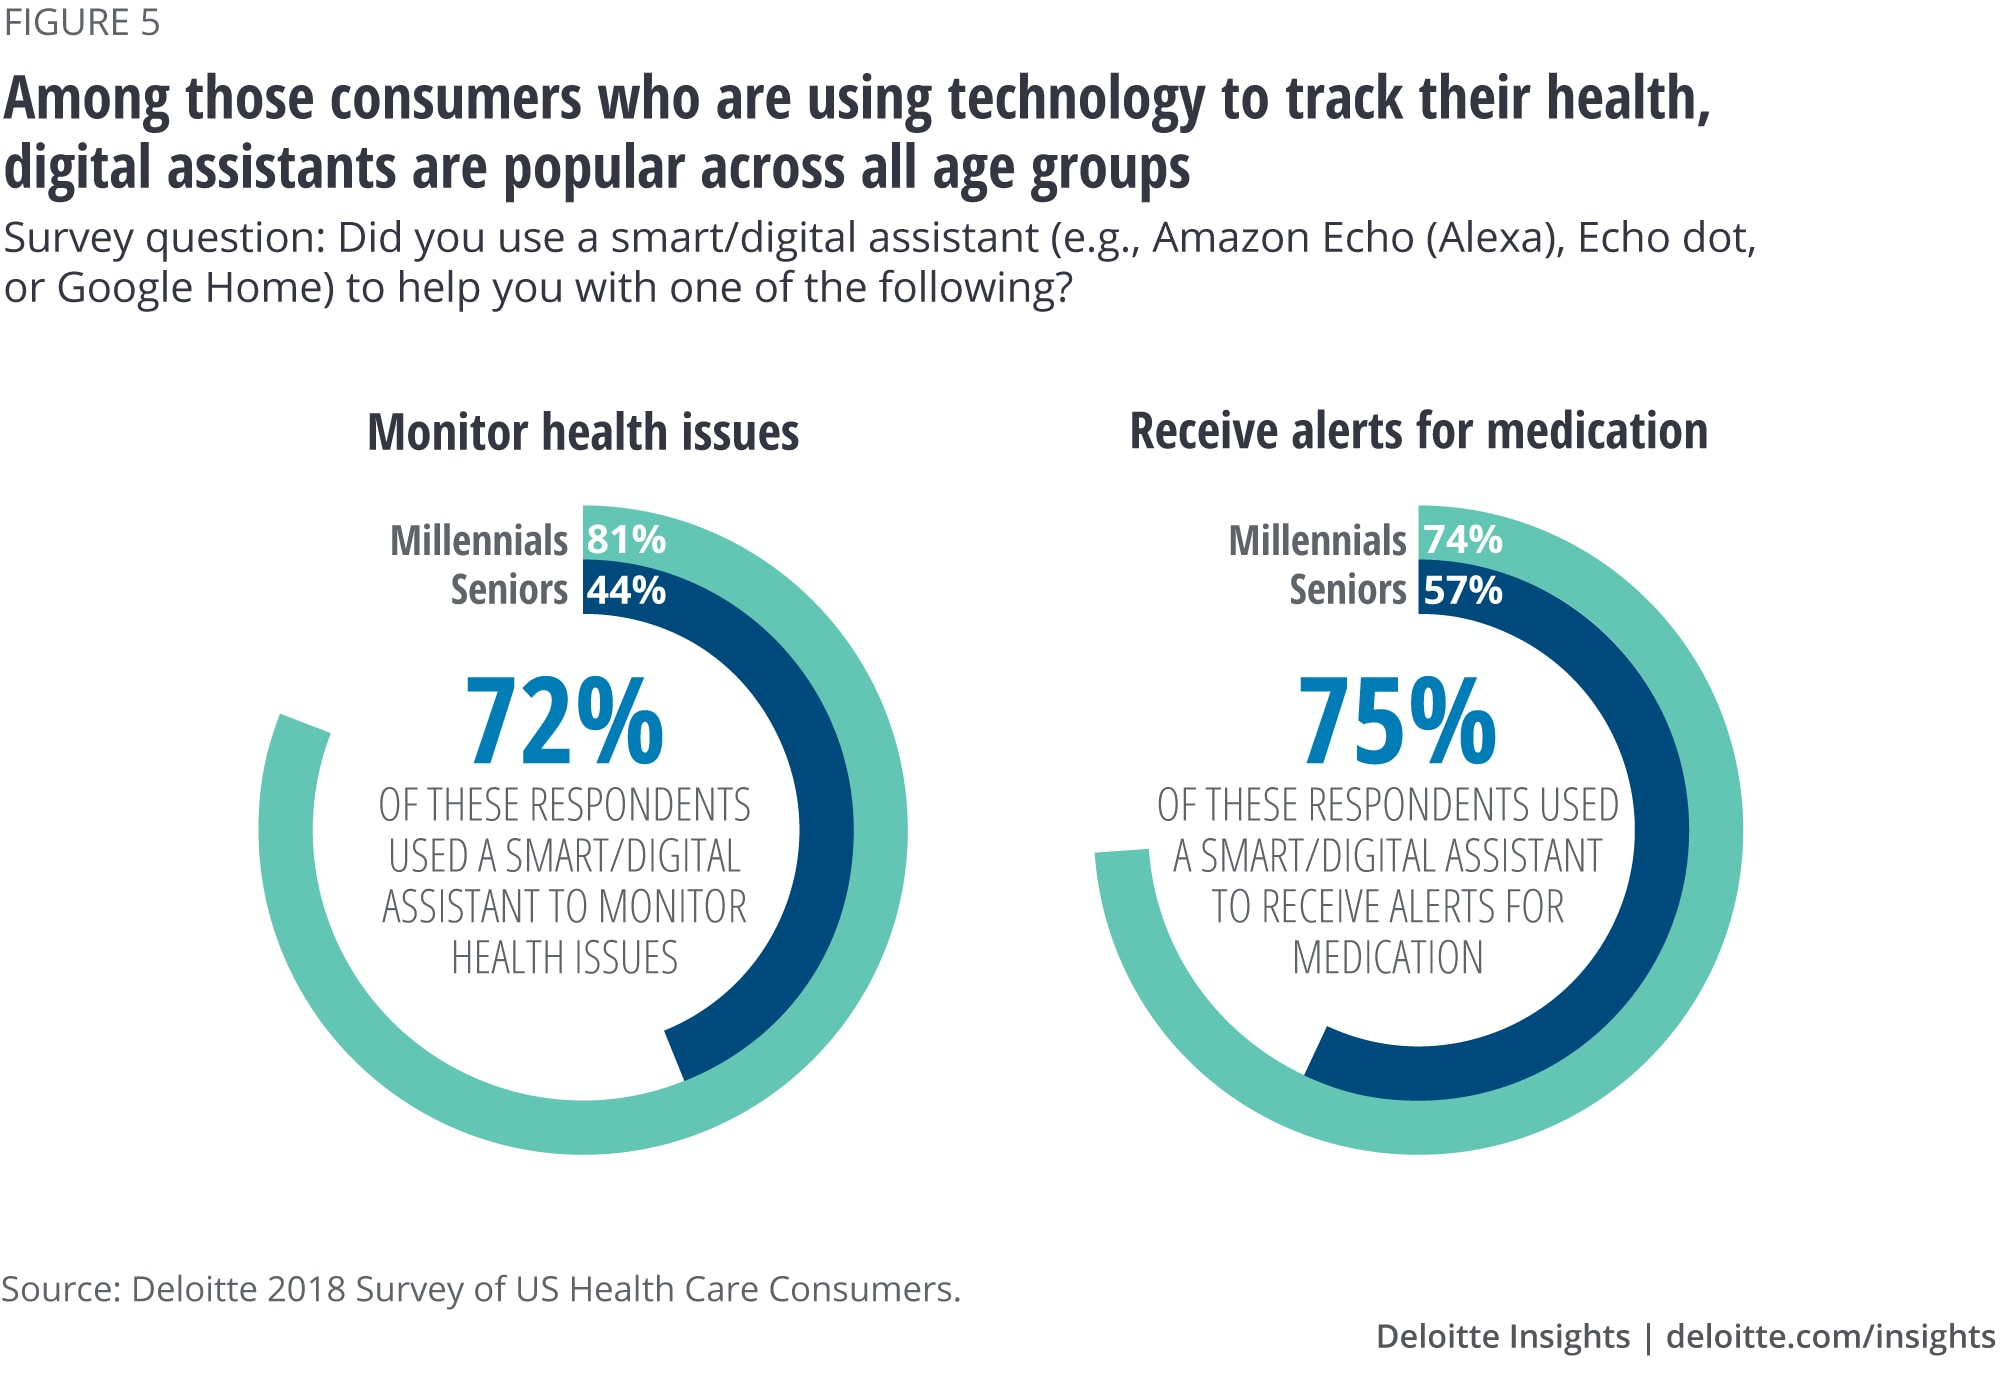 Among those consumers who are using technology to track their health, digital assistants are popular across all age groups